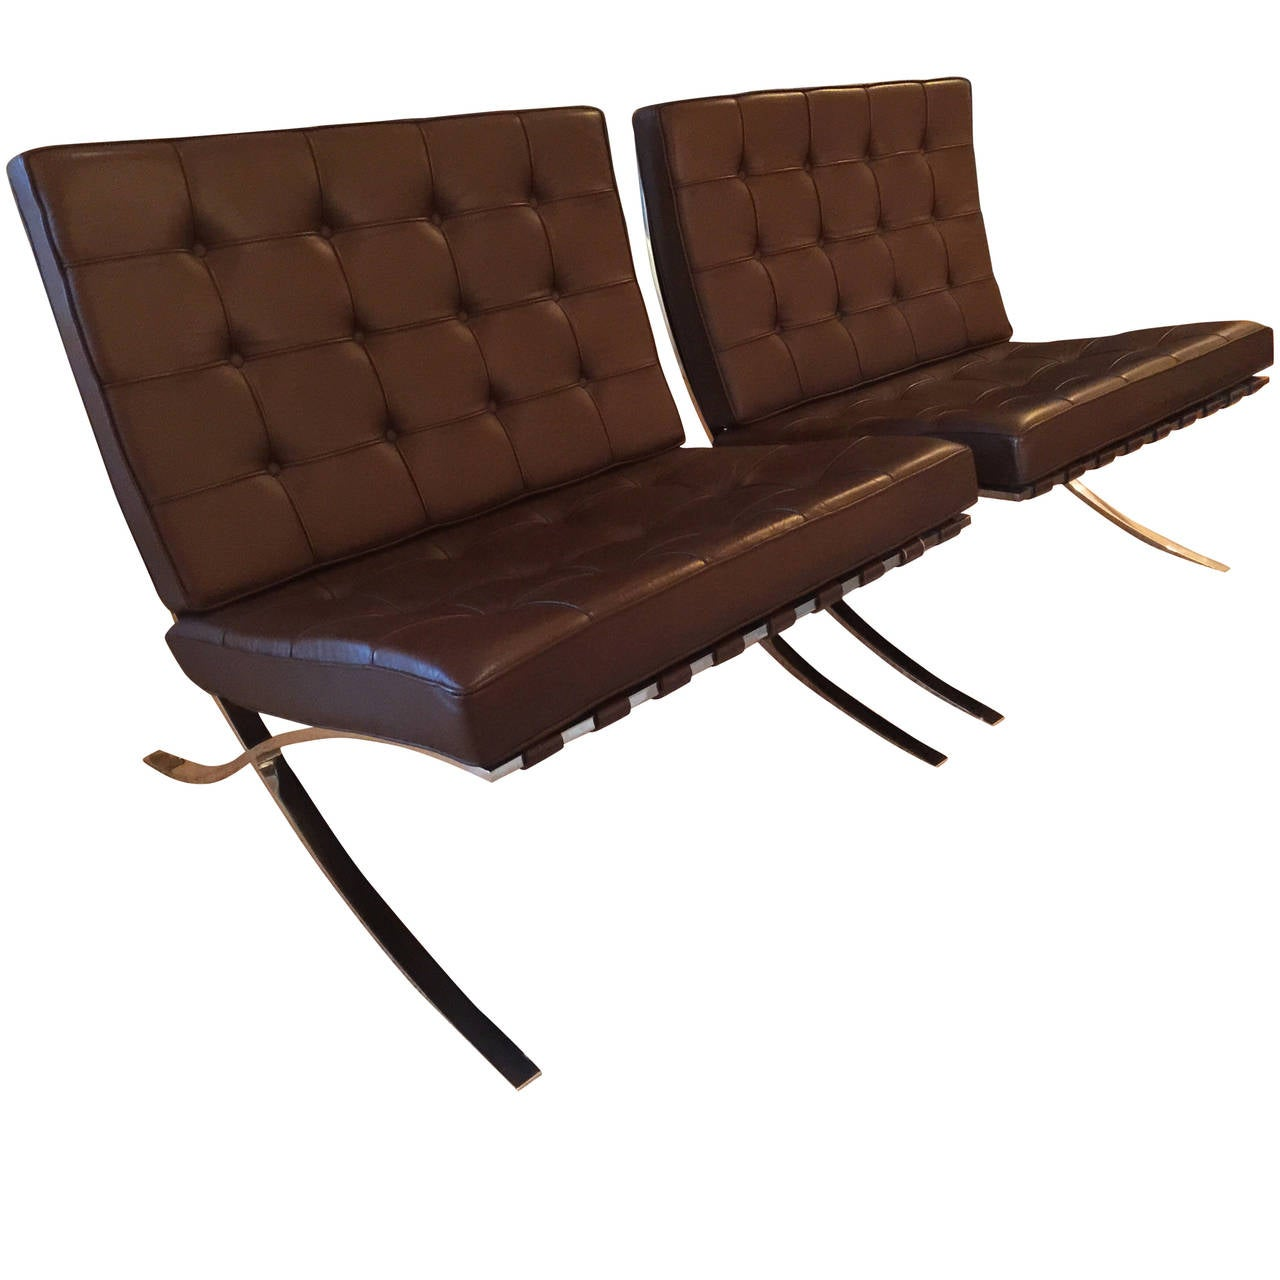 barcelona chair used gym accessories pair of brown leather chairs by mies van der